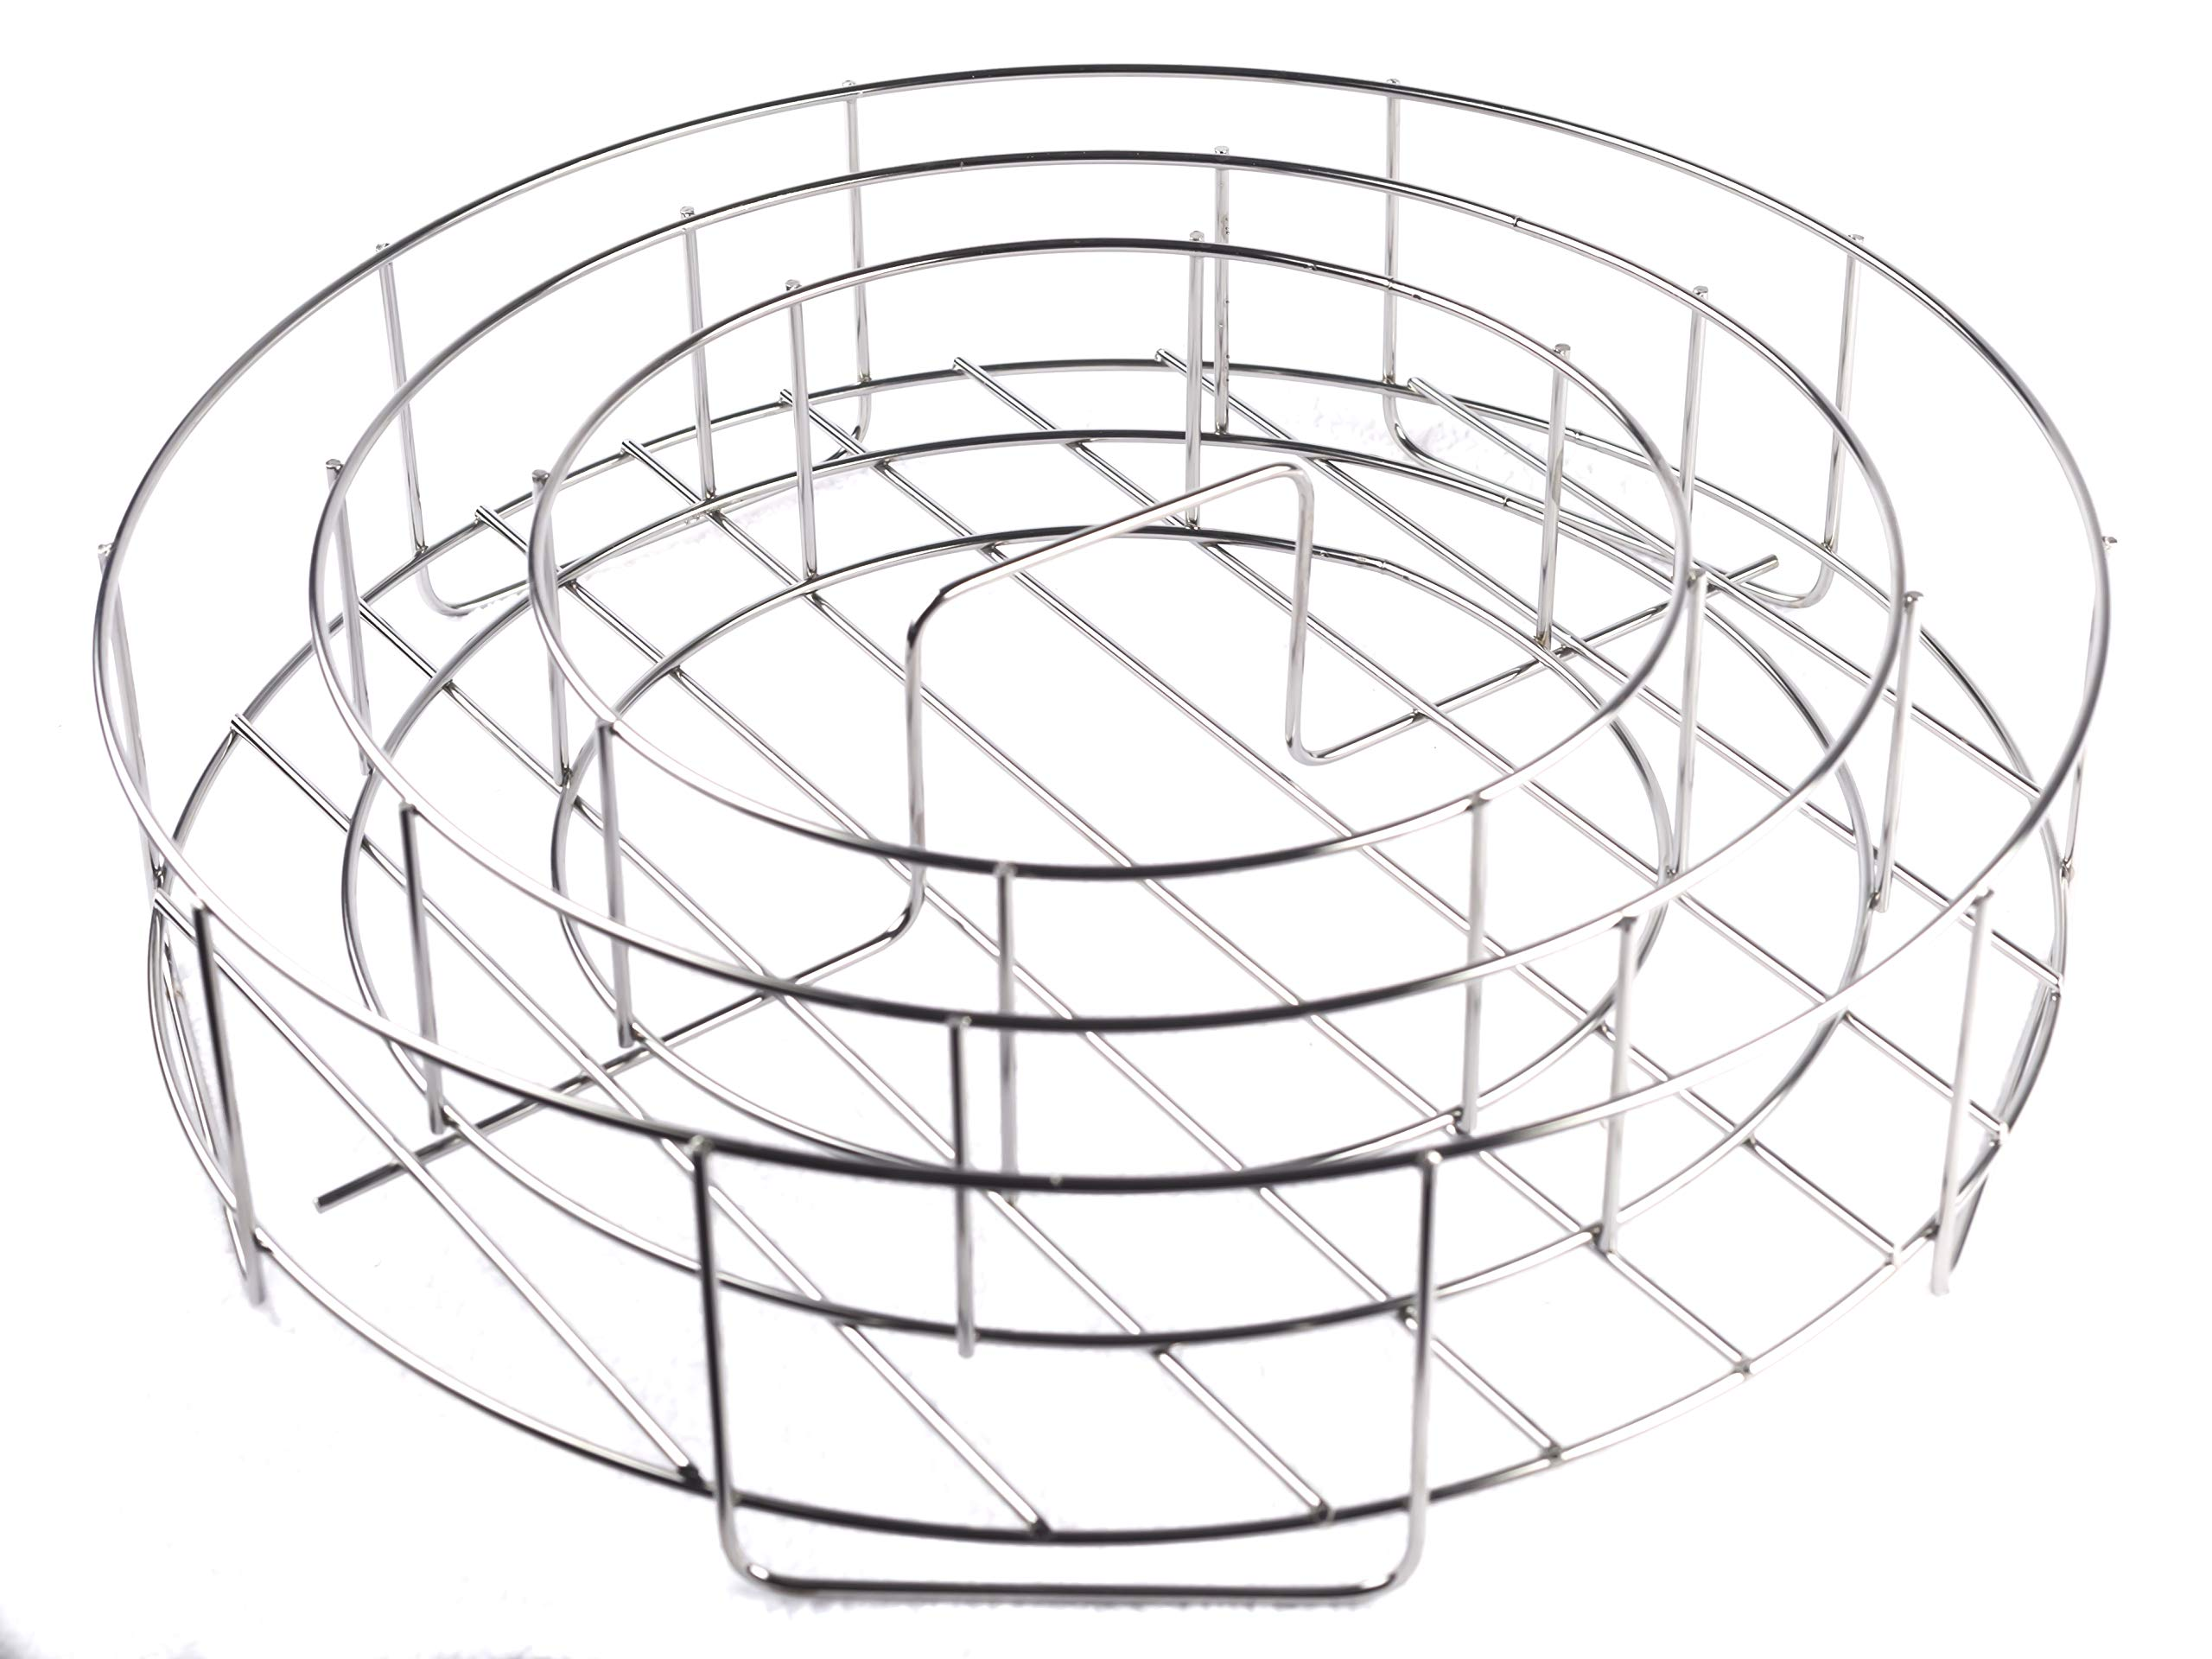 BBQ Guru Rib Rings - Rib Rack and Chicken Roaster for Weber, Green Egg, Kamado Joe, Vision, Grill Dome, Primo Grills and Indoor Ovens by BBQ Guru (Image #4)